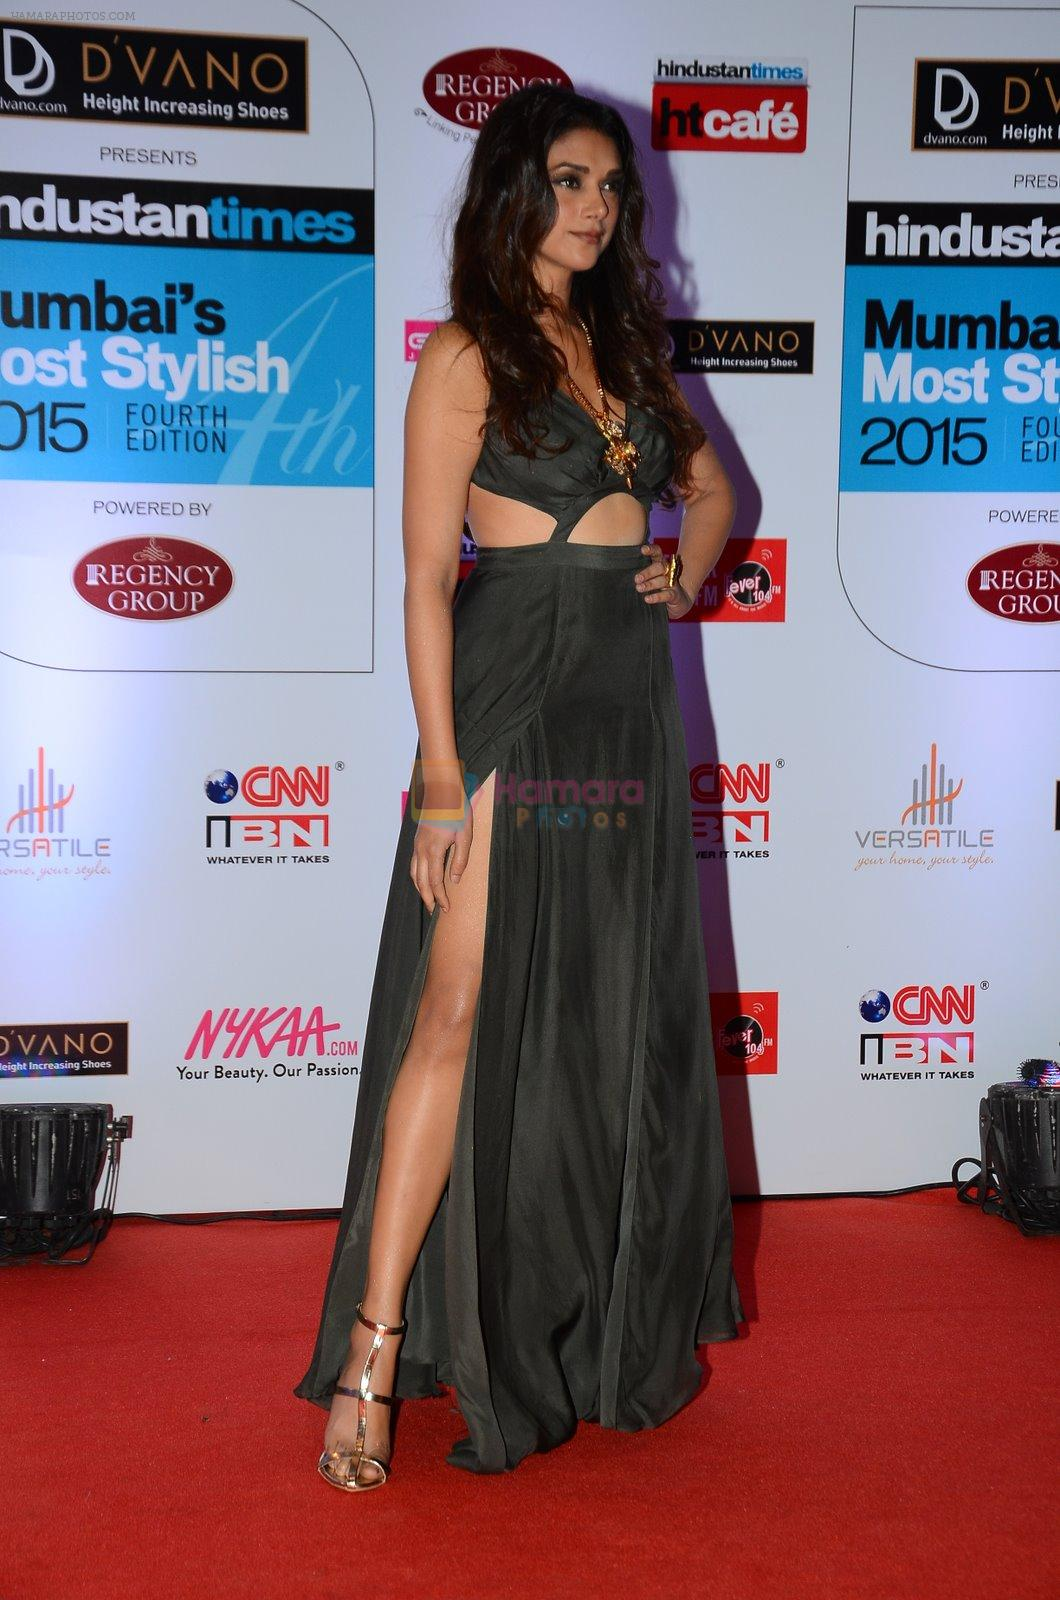 Aditi Rao Hydari at HT Mumbai's Most Stylish Awards 2015 in Mumbai on 26th March 2015